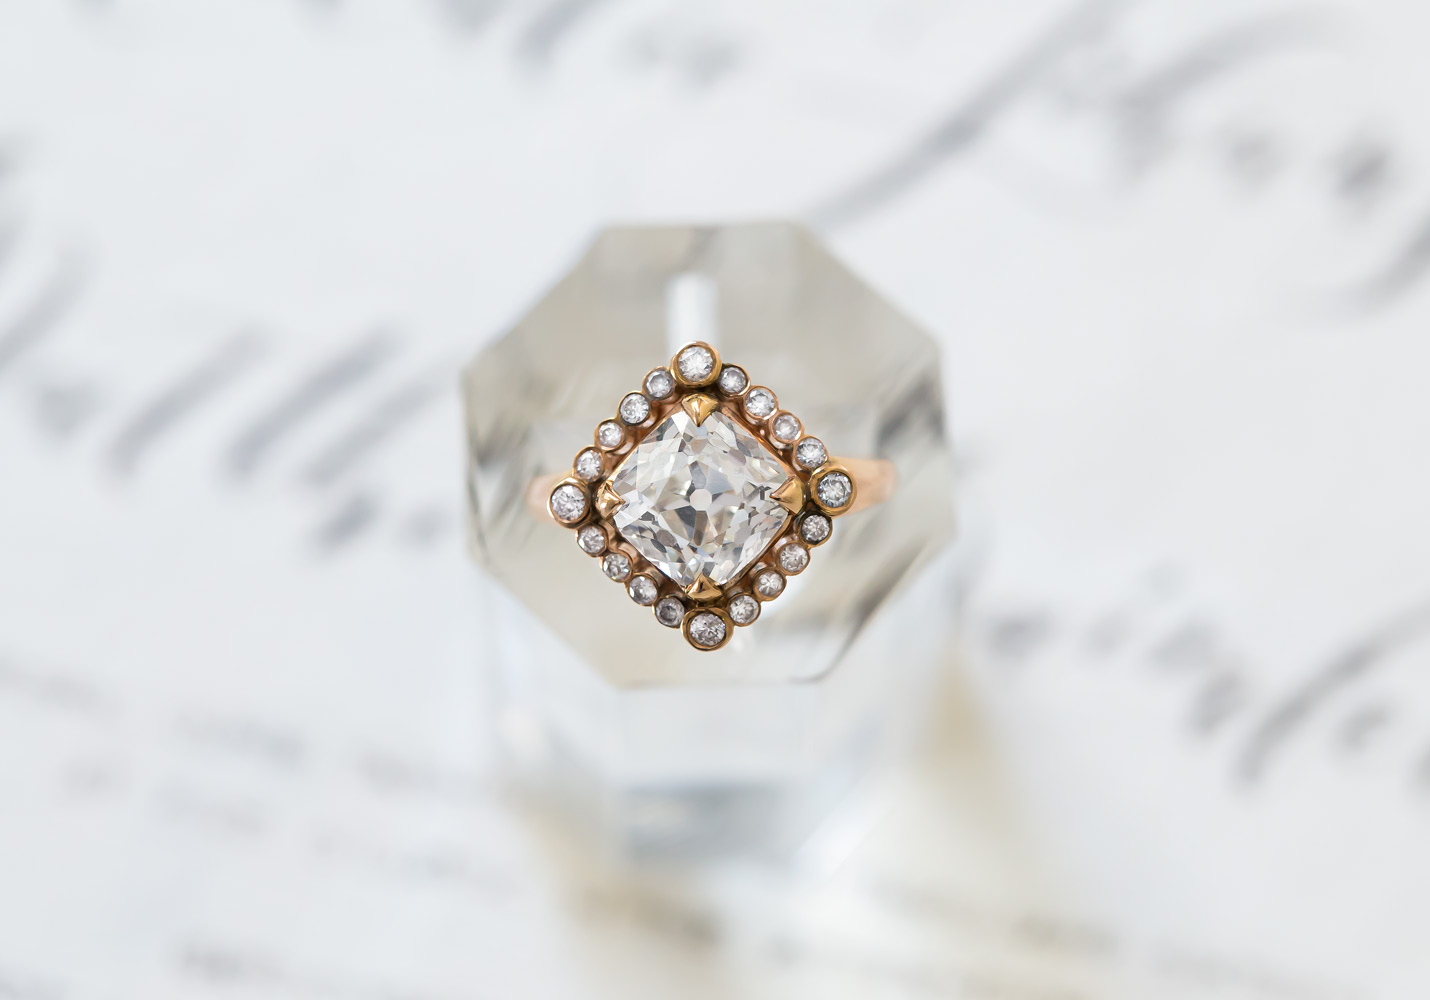 samira wiley engagement ring inspiration, claire pettibone for trumpet & horn, kite set diamond ring in rose gold